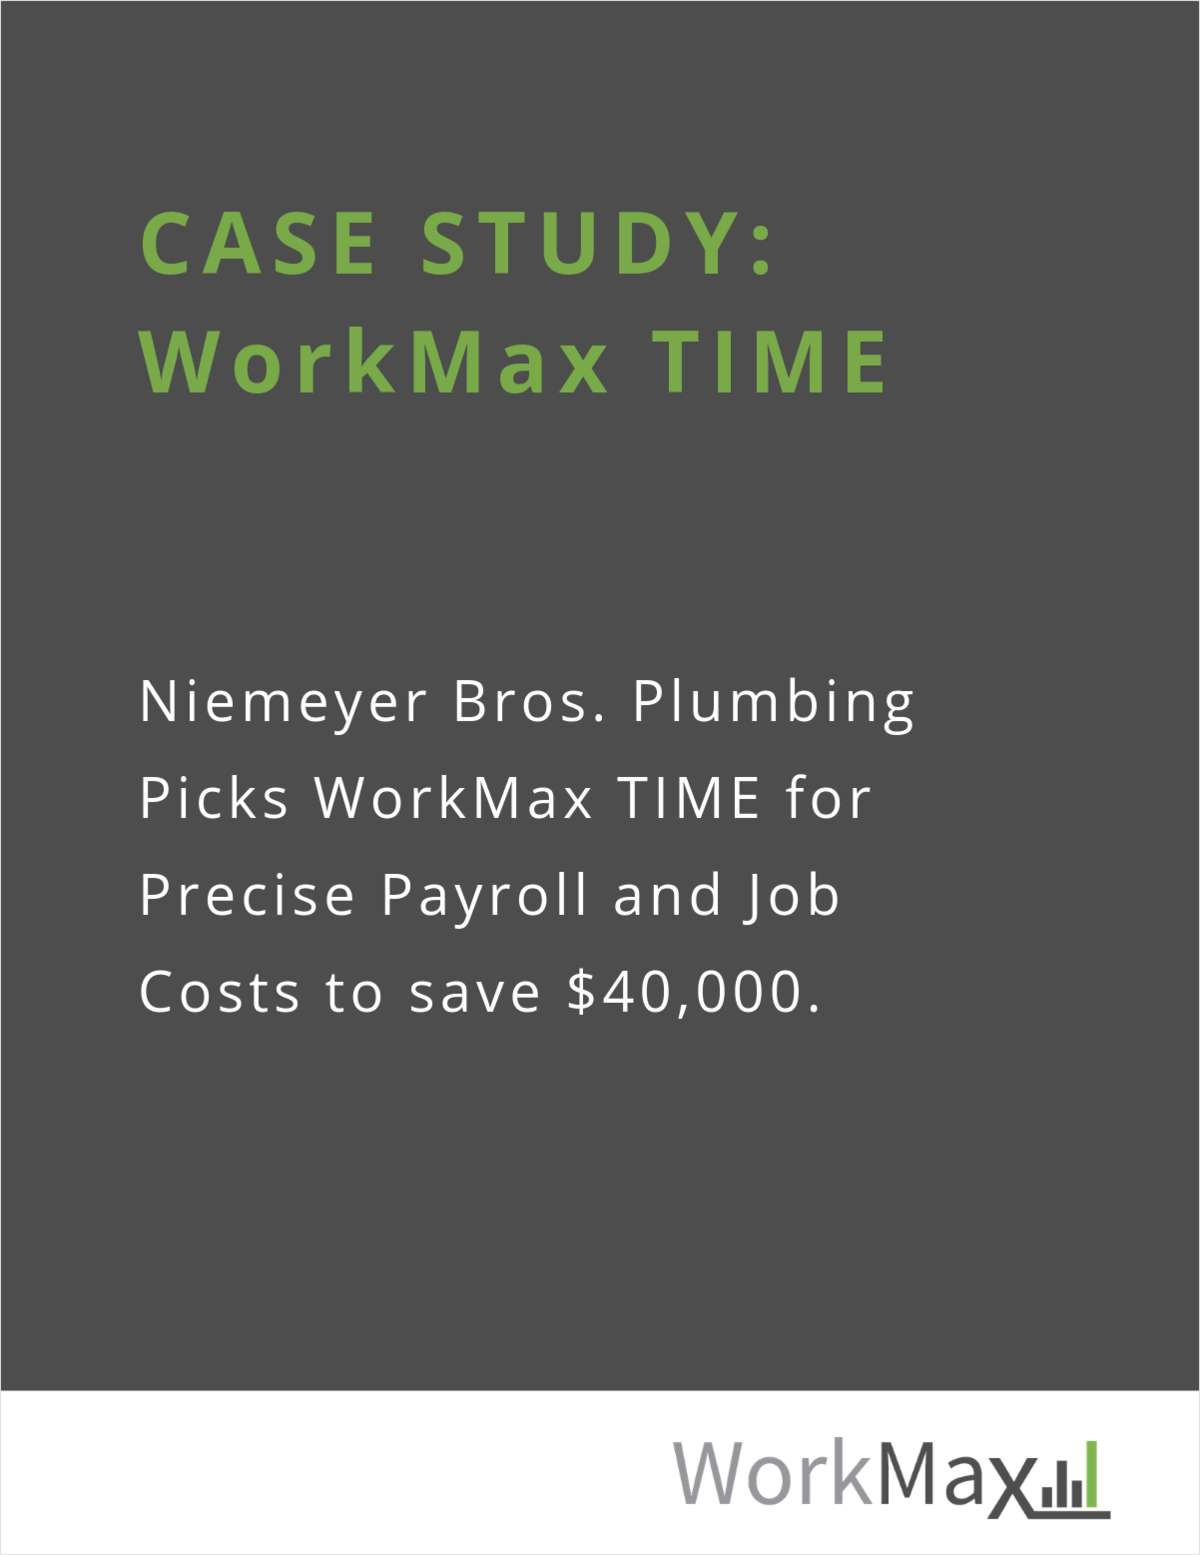 CASE STUDY: Niemeyer Bros. Plumbing for WorkMax TIME